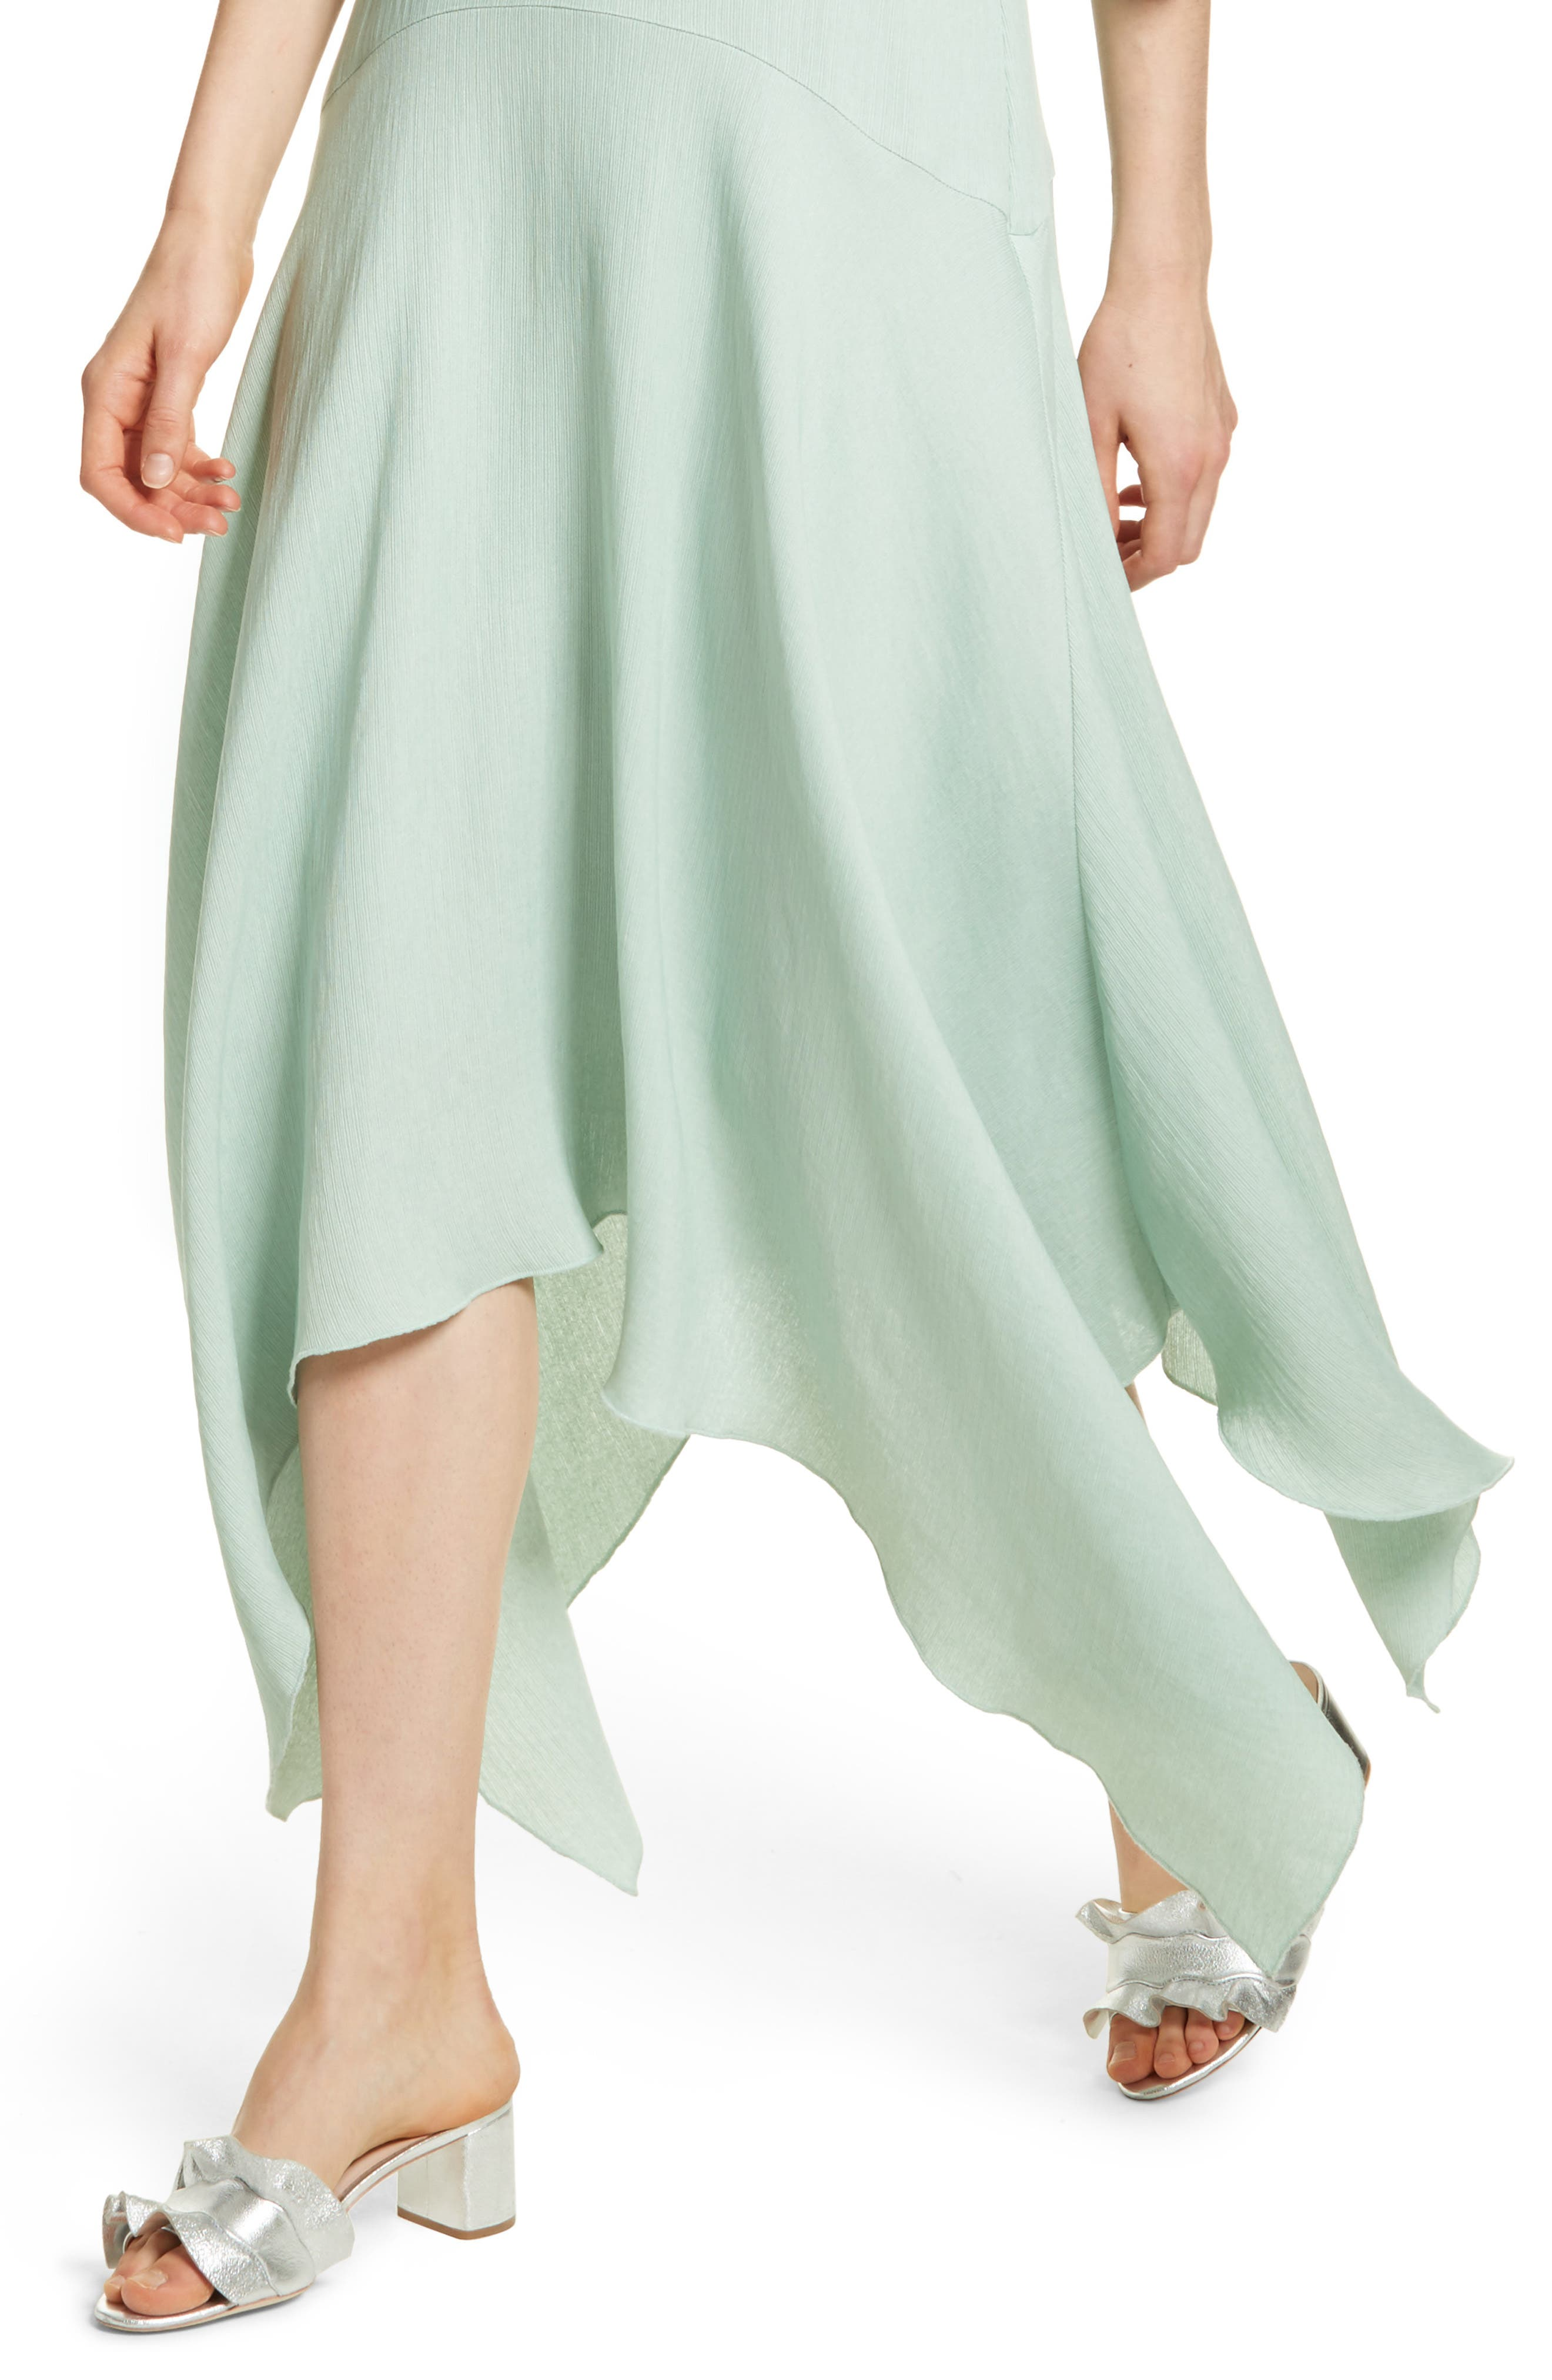 Prose & Poetry Vivianna Drop Waist Midi Dress,                             Alternate thumbnail 4, color,                             Aqua Foam